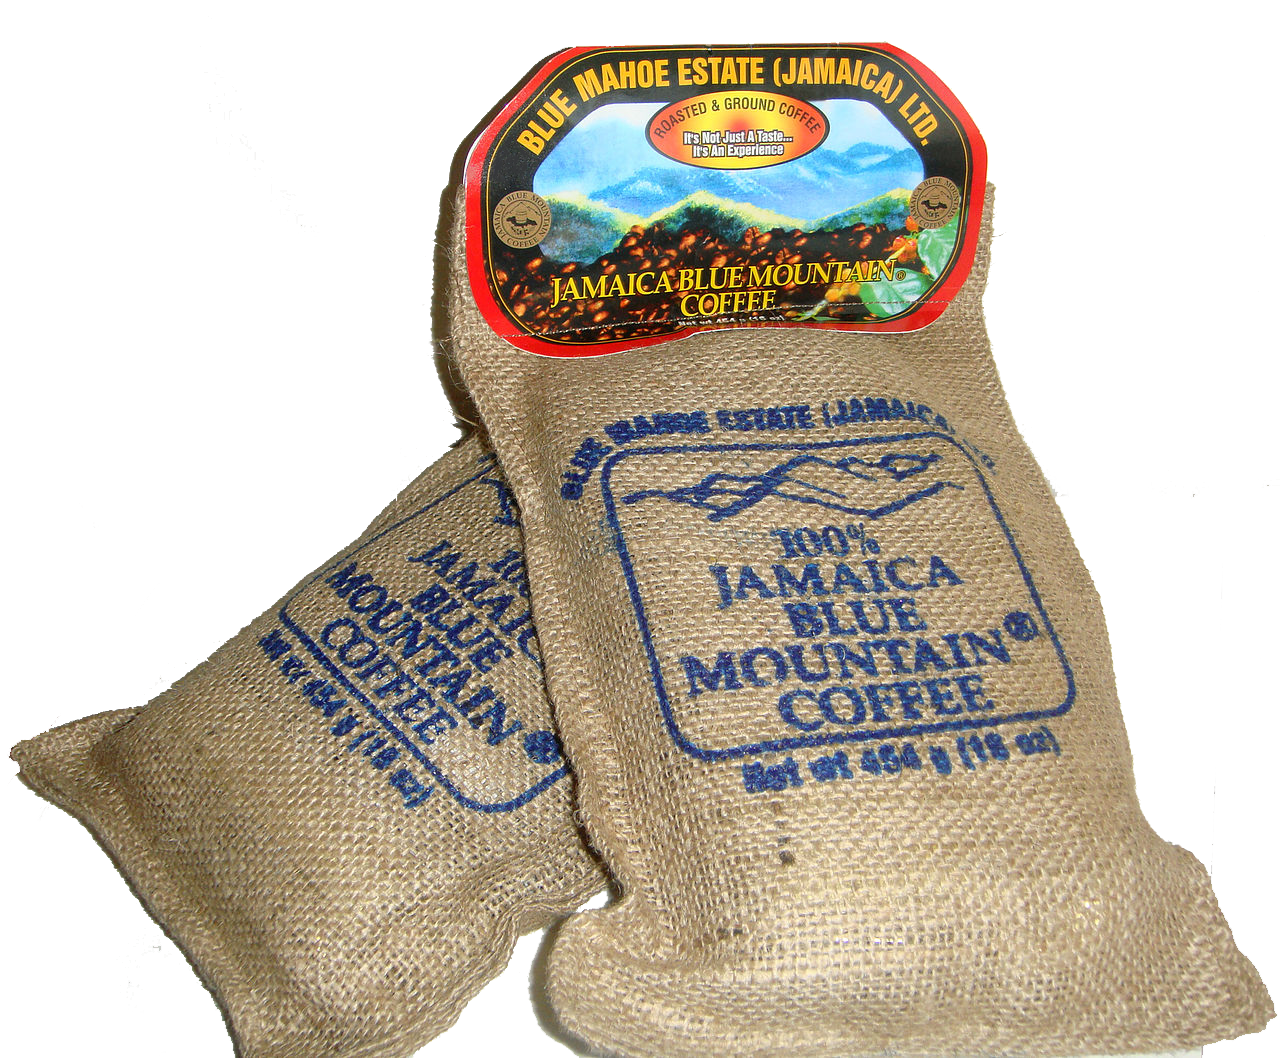 Jamaica_Blue_Mountain_Coffee_Latino Café